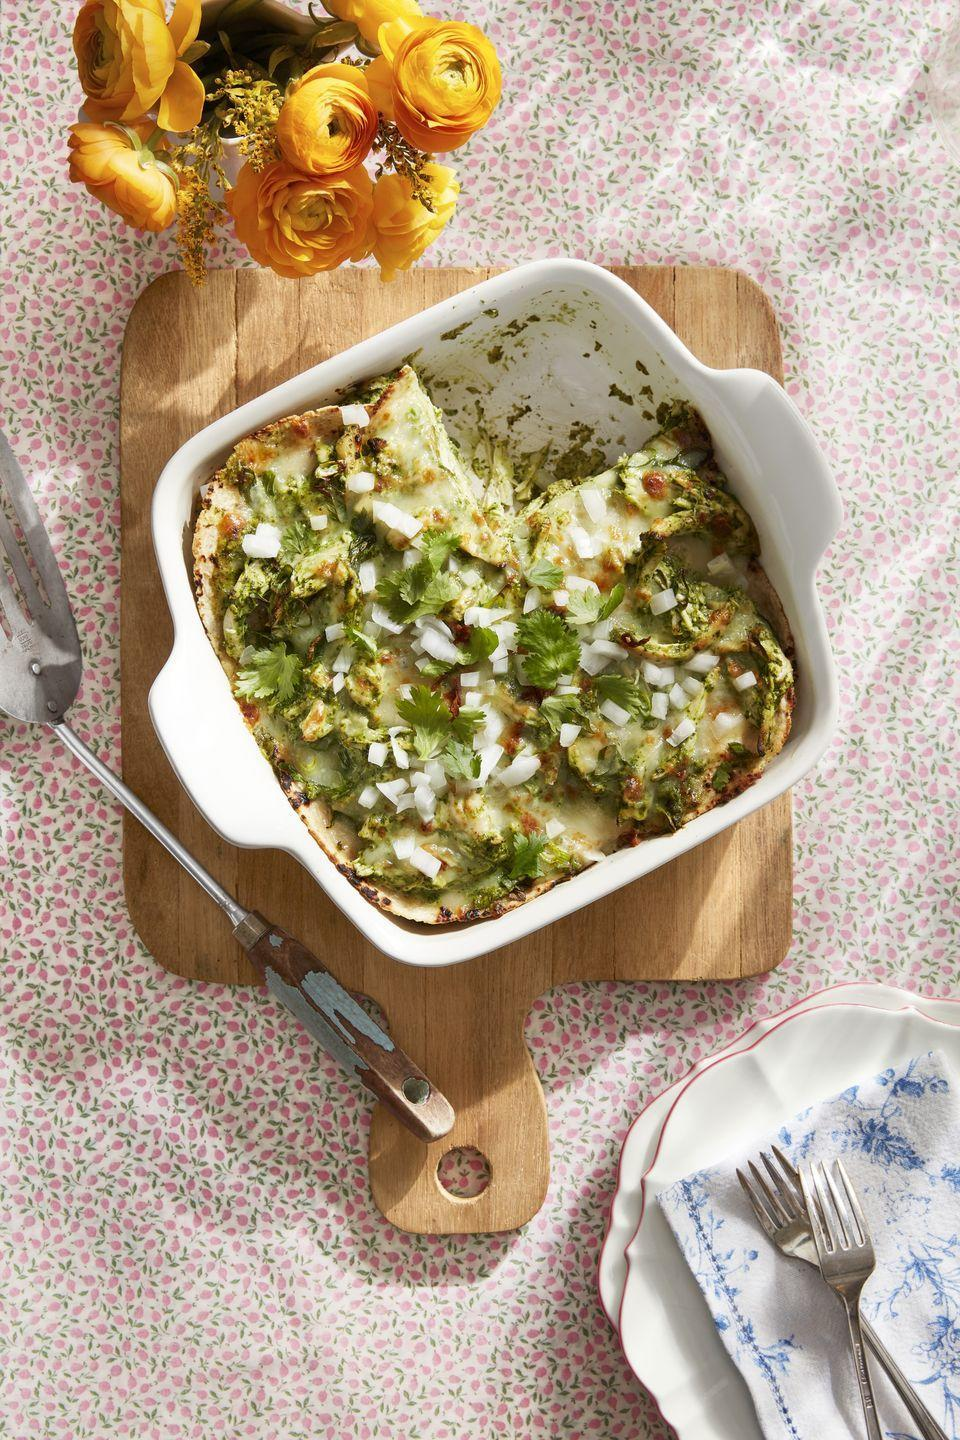 """<p>Fresh corn tortillas make up the layers of this Mexican-inspired pie that's flavored with green salsa and fresh cilantro. </p><p><strong><a href=""""https://www.countryliving.com/food-drinks/a30613447/salsa-verde-enchilada-pie-recipe/"""" rel=""""nofollow noopener"""" target=""""_blank"""" data-ylk=""""slk:Get the recipe"""" class=""""link rapid-noclick-resp"""">Get the recipe</a>.</strong></p>"""